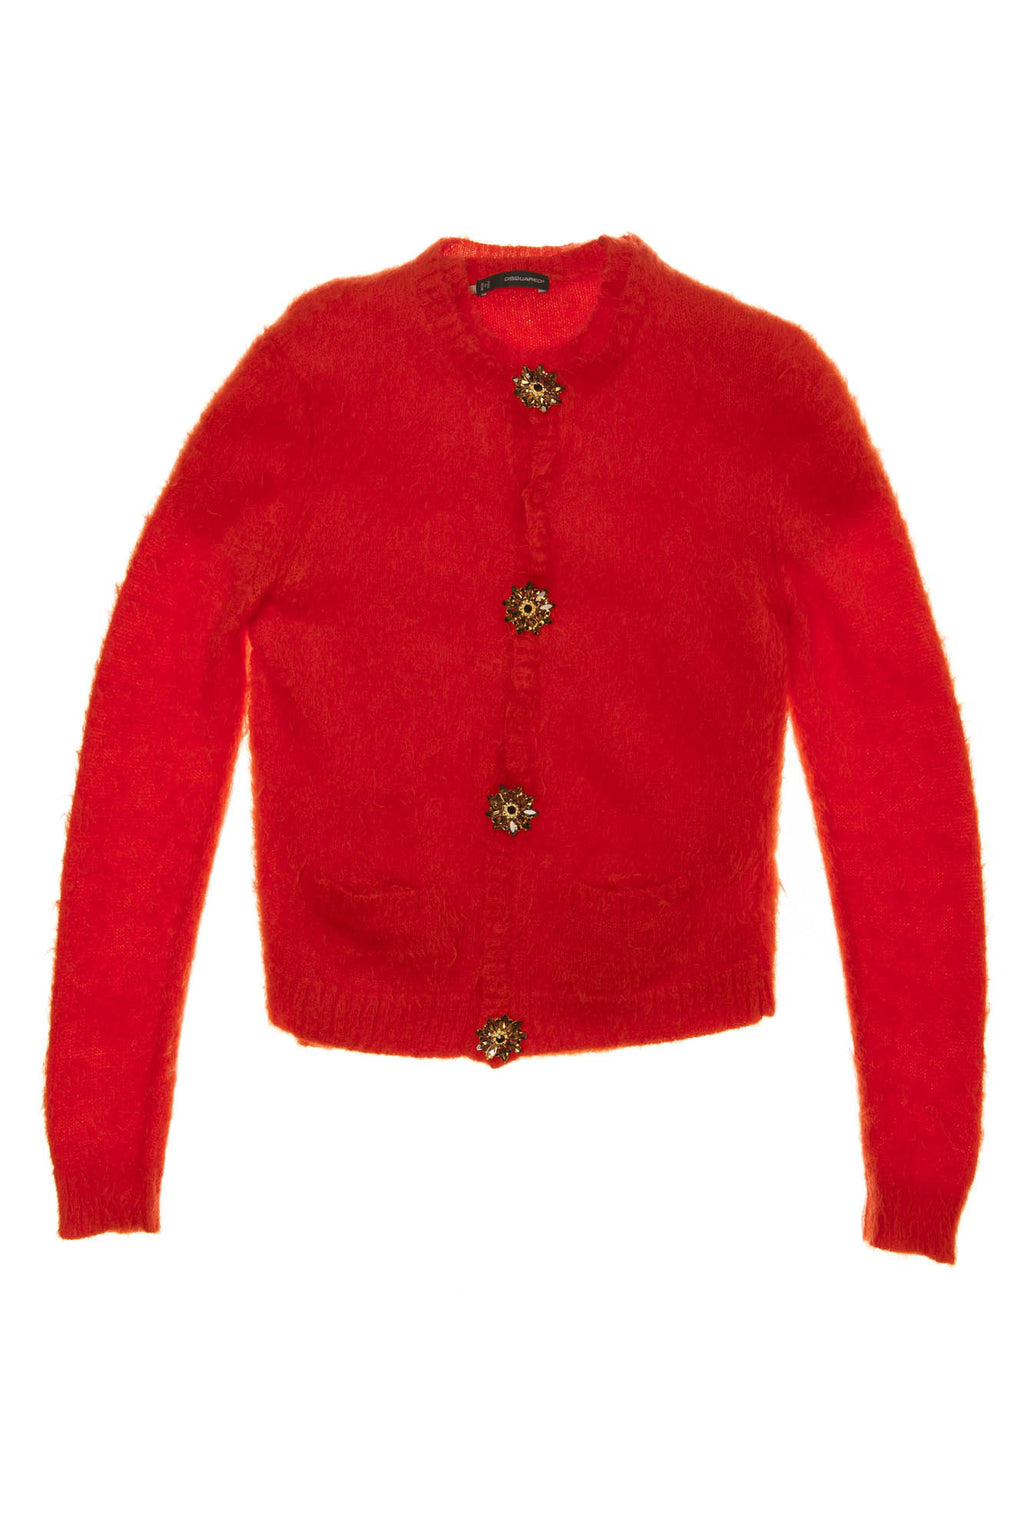 Dsquared2 - Red Sweater Cardigan - L